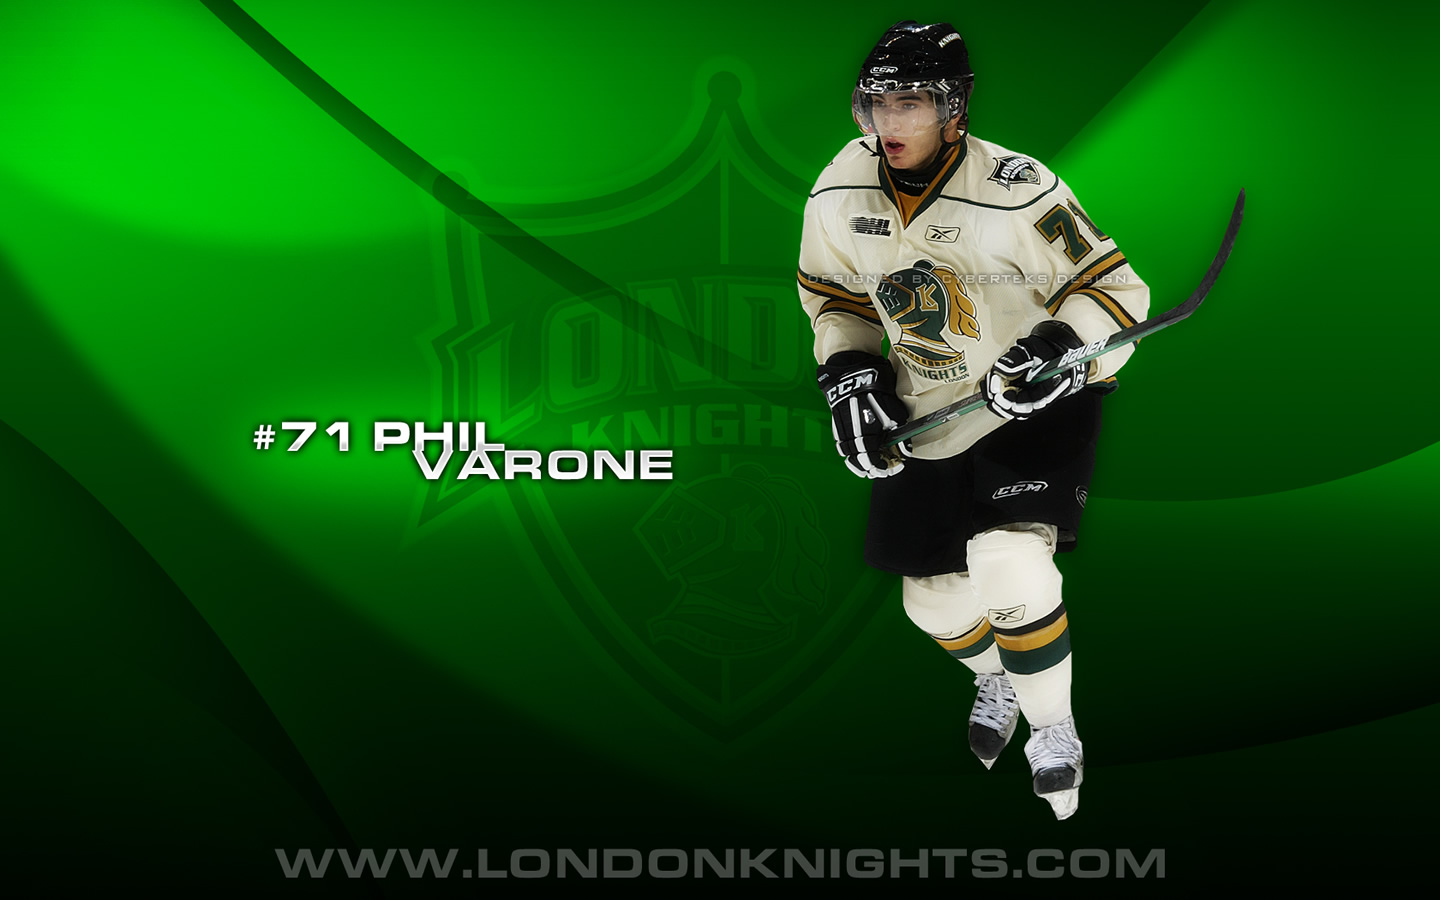 London Knights Hockey Club Ontario League Picture 1440x900